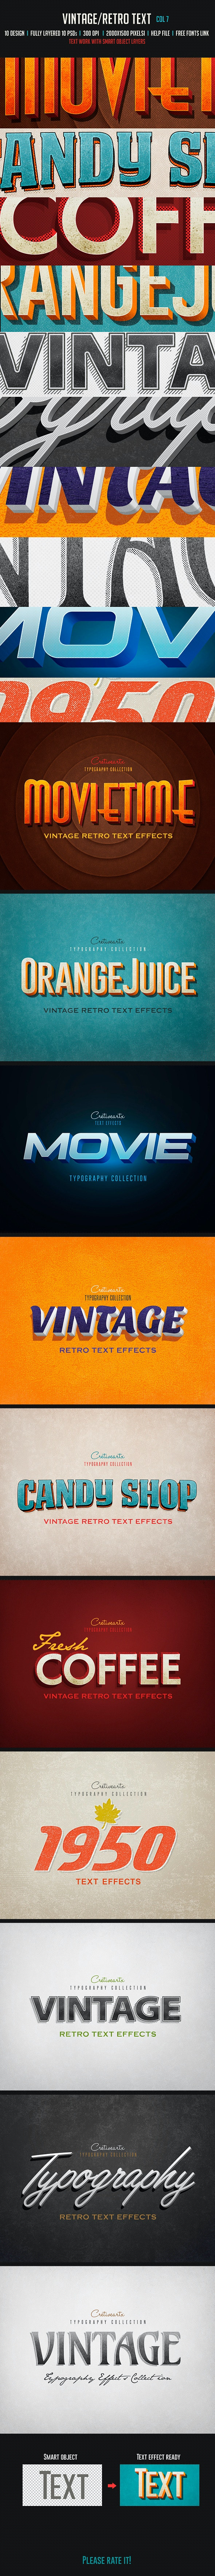 Vintage/Retro Text Col 7 - Text Effects Actions